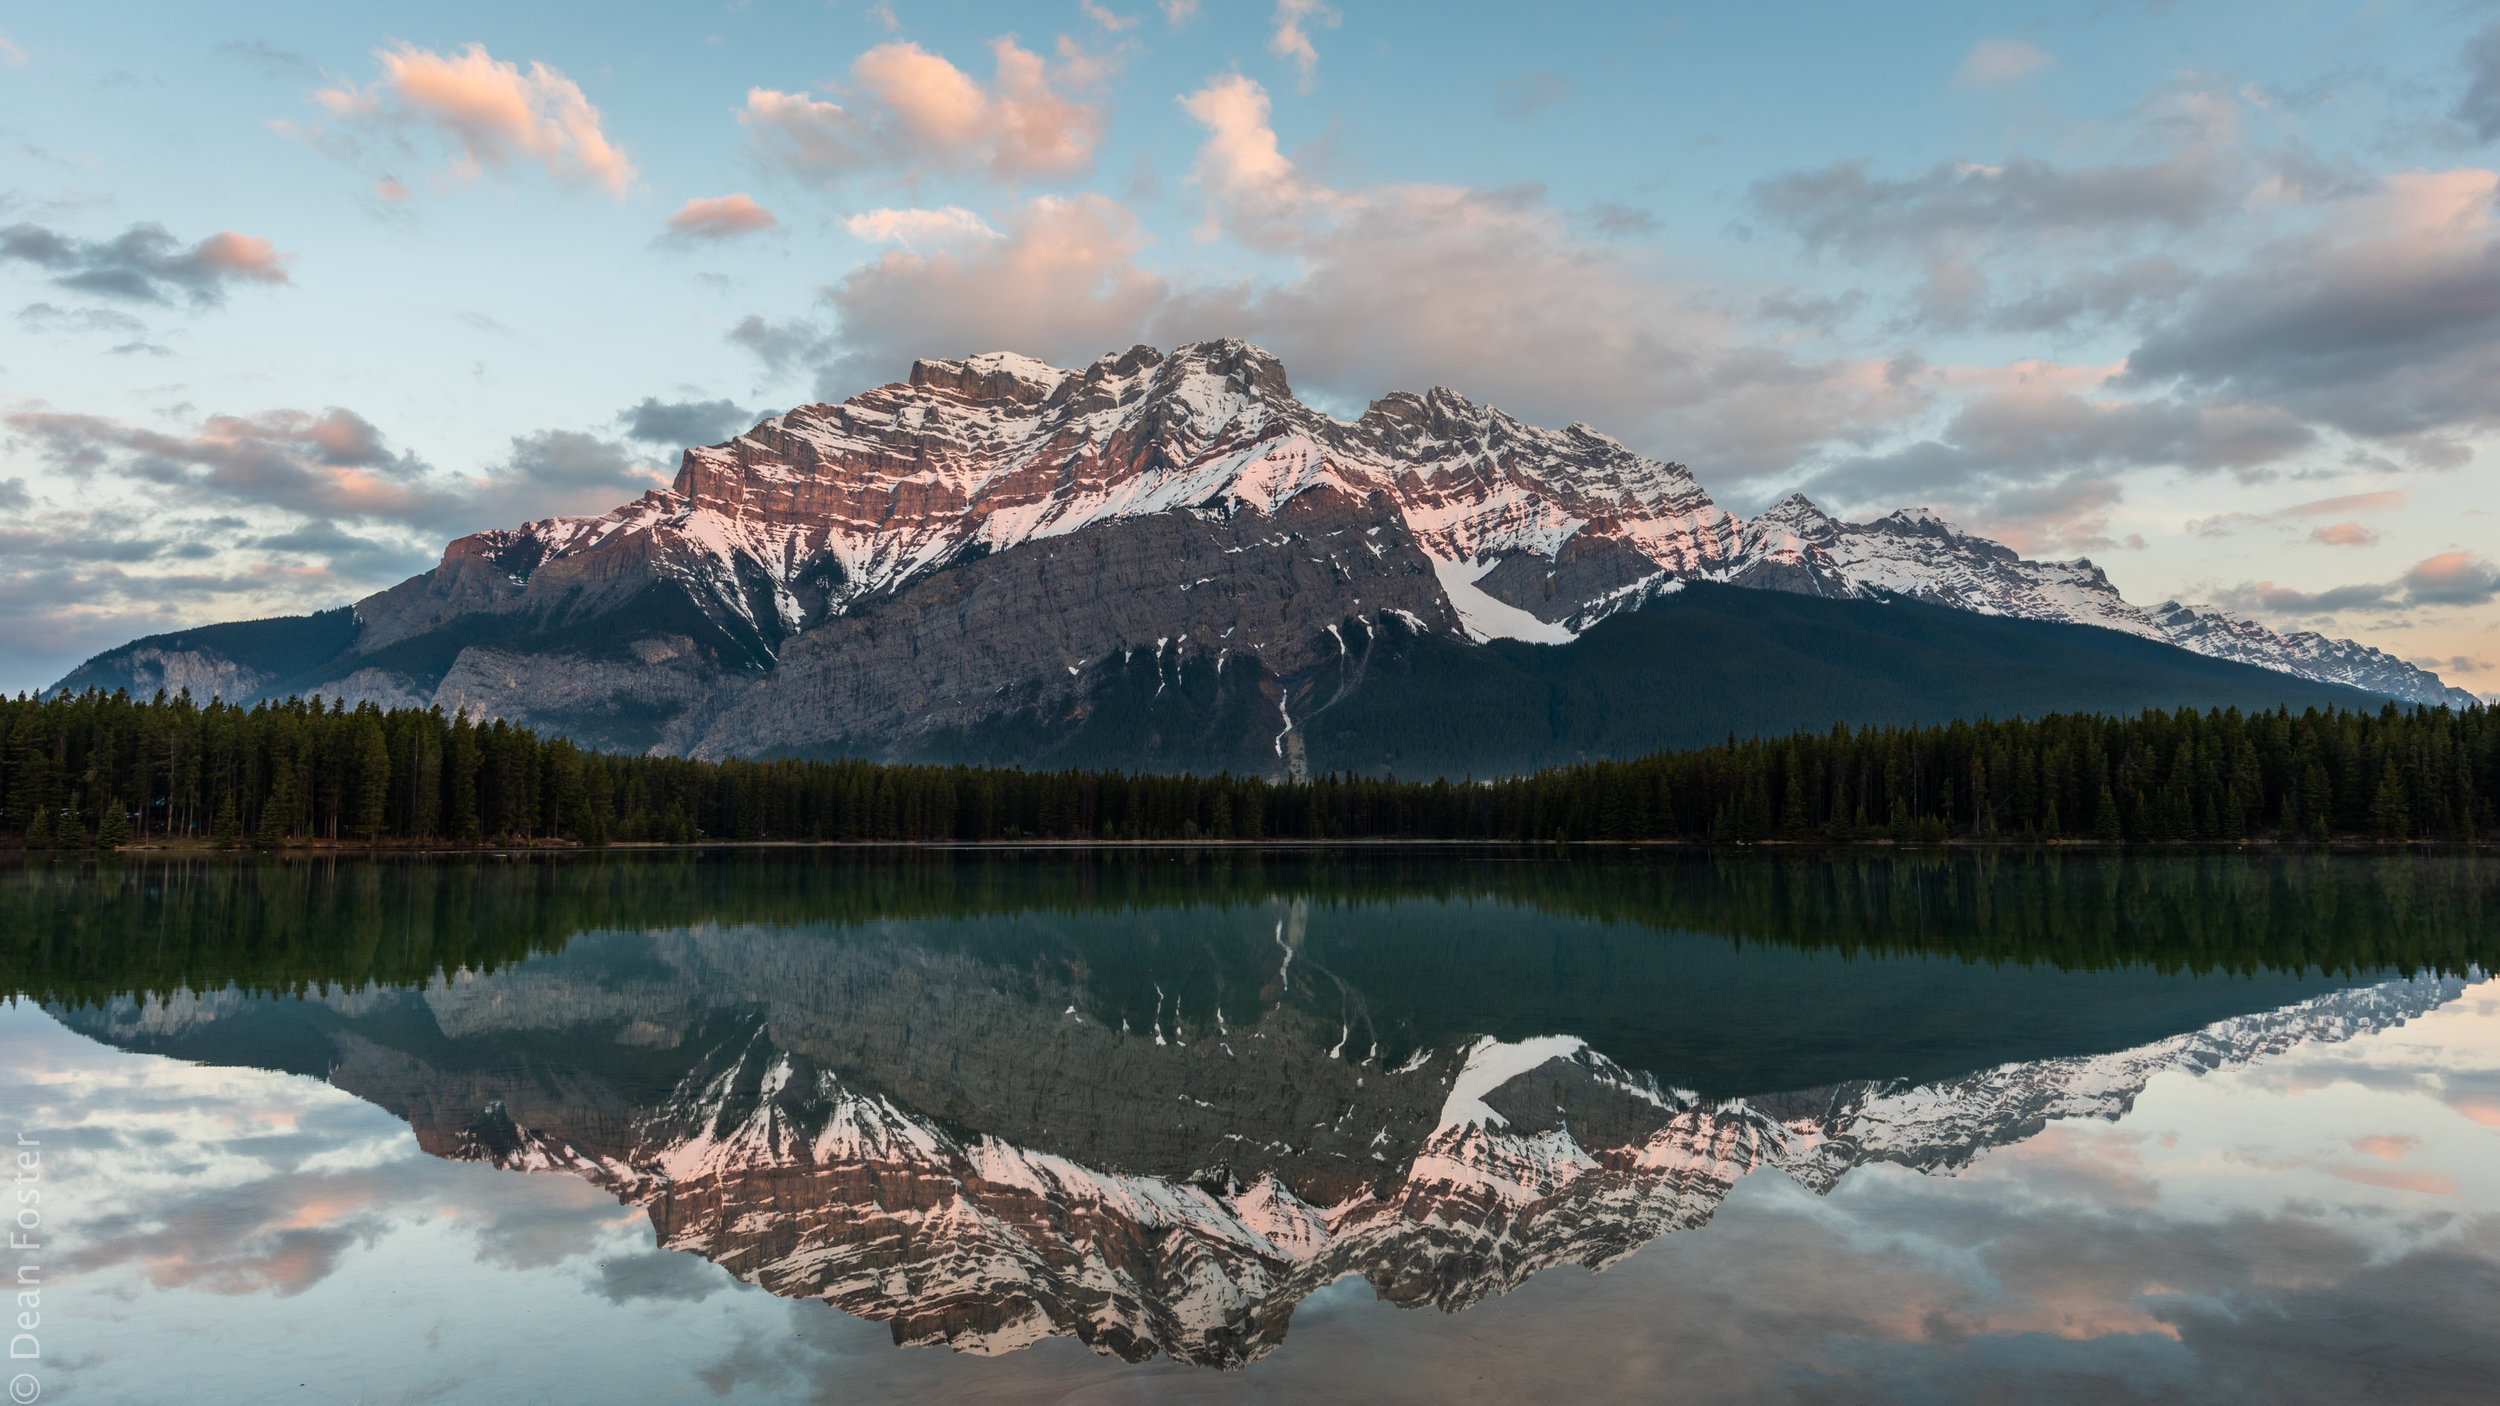 Cascade Mountain reflects in Two Jack Lake as the sun rises